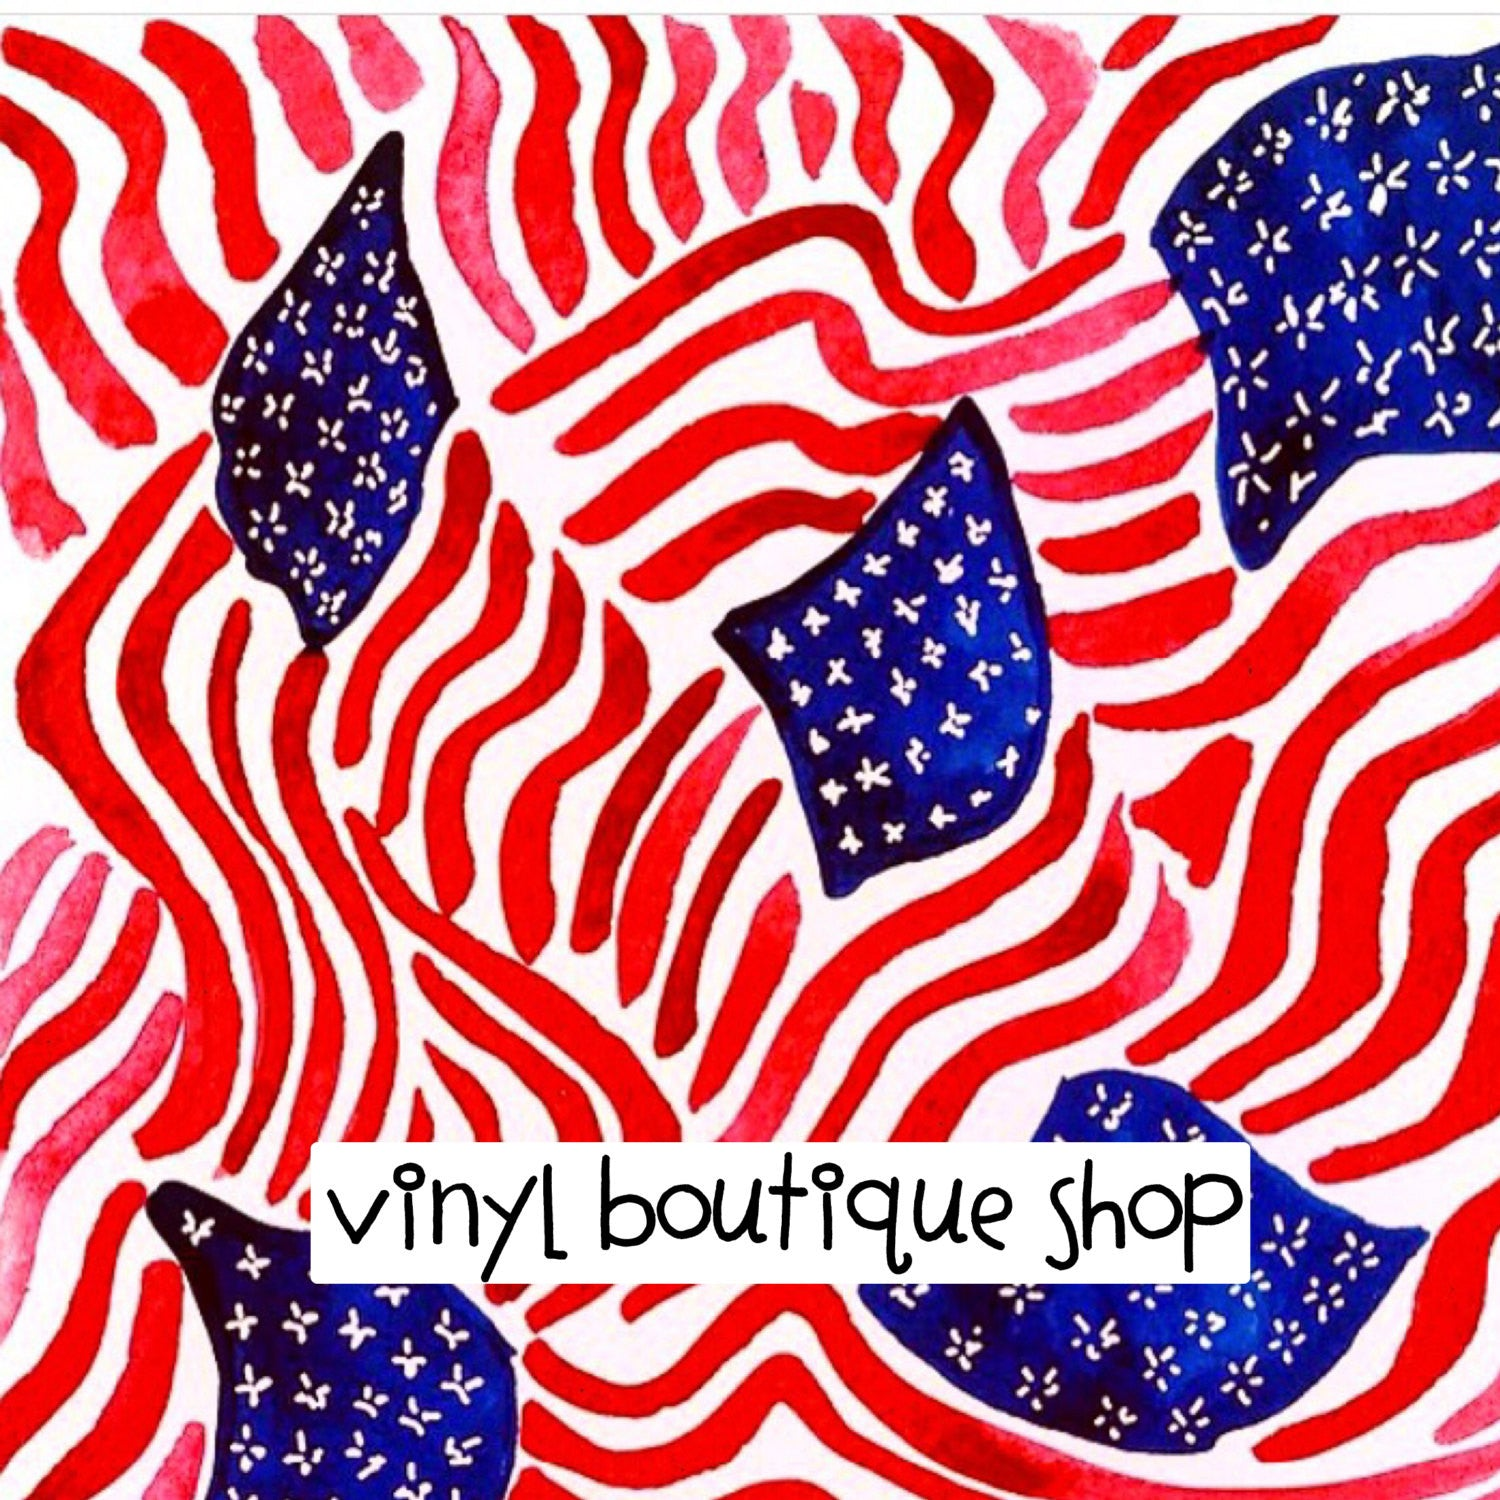 4Th Of July Watercolor Lilly Inspired Printed Patterned Craft Vinyl - Vinyl Boutique Shop